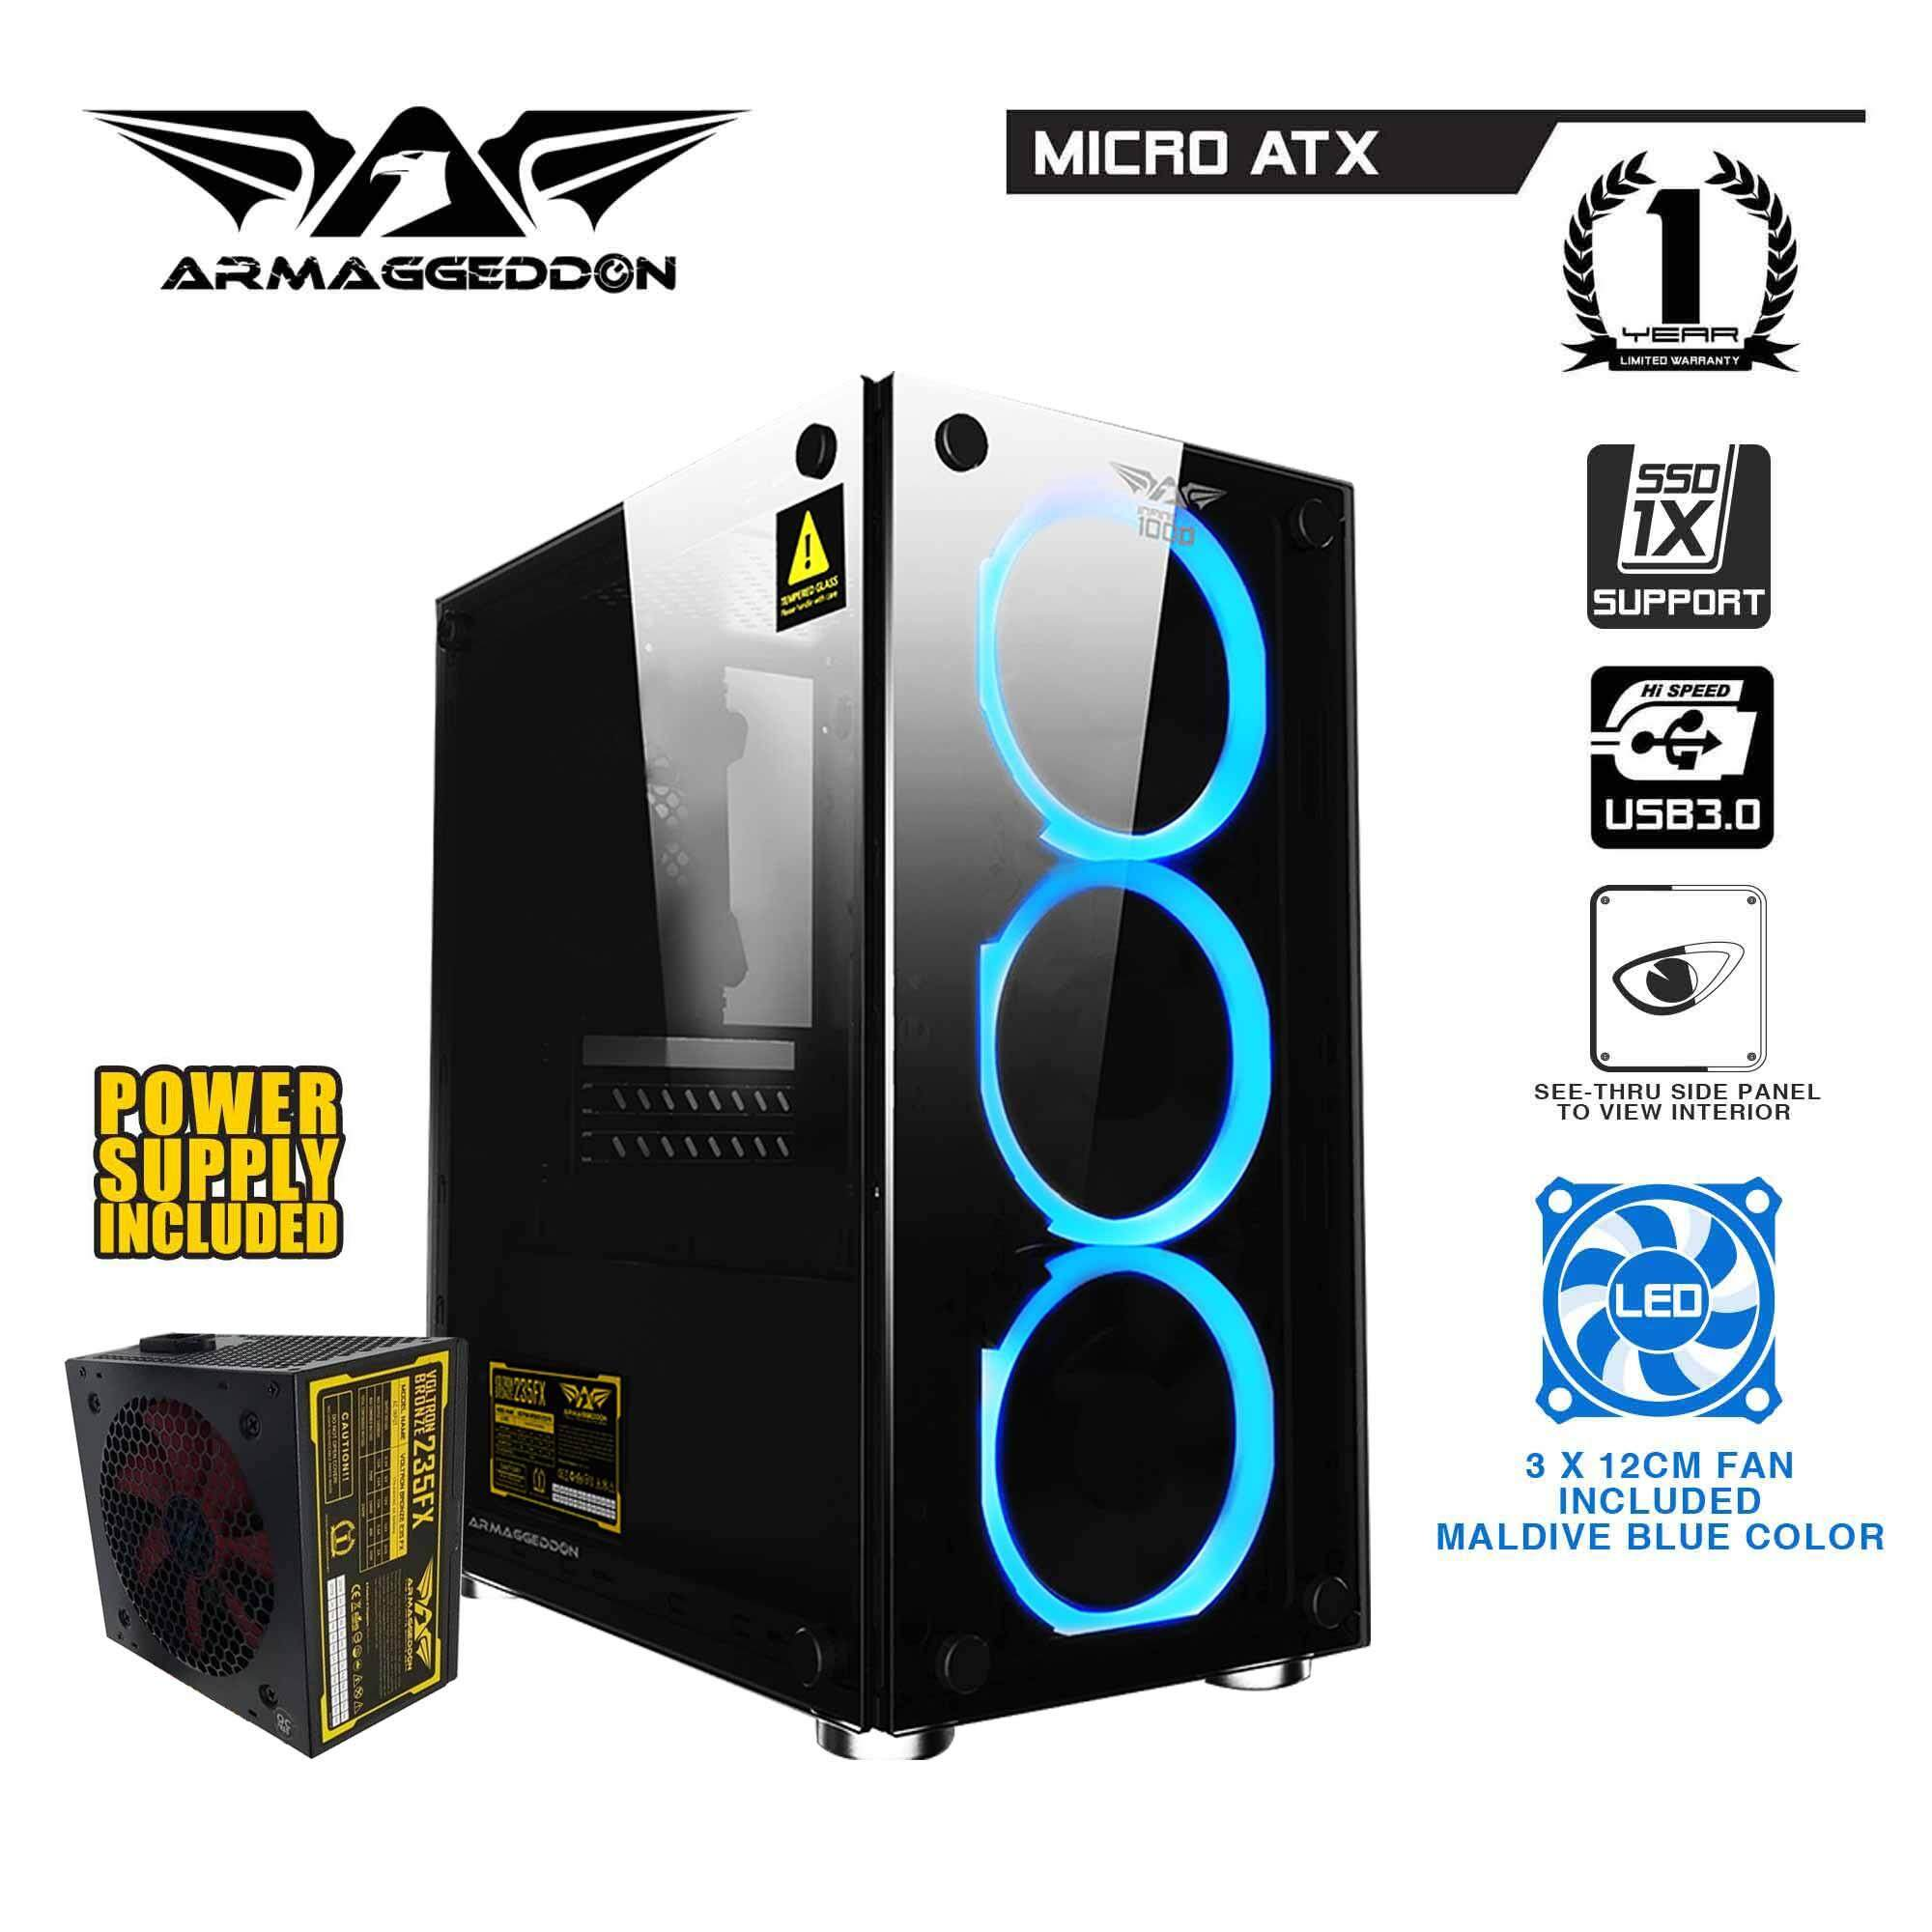 Armaggeddon Infineon 1000+ Micro ATX Gaming PC Case with Power Supply and Cooling Fan (x3) Malaysia